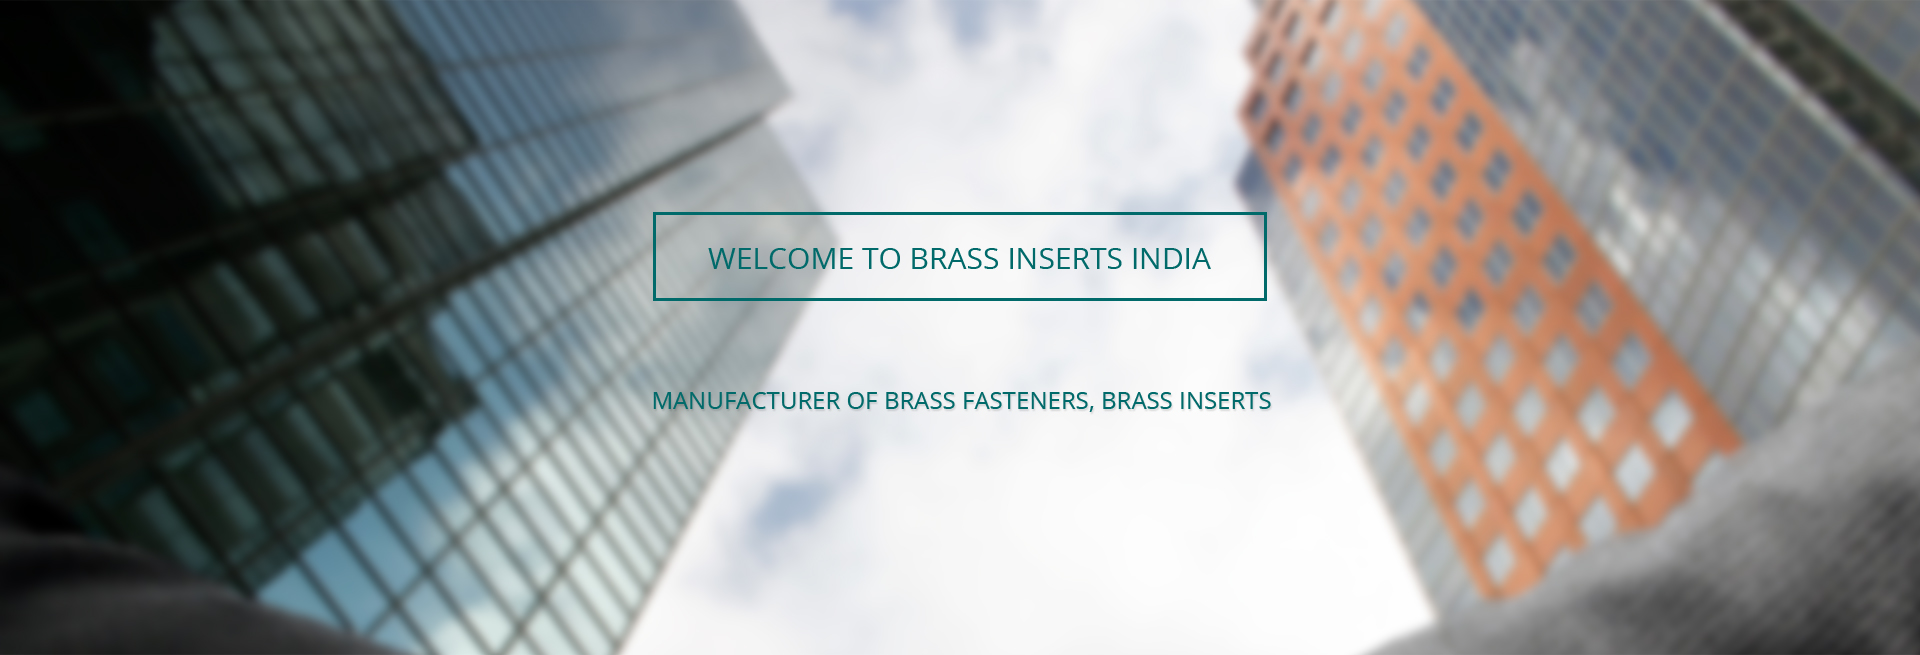 Brass Inserts India banner